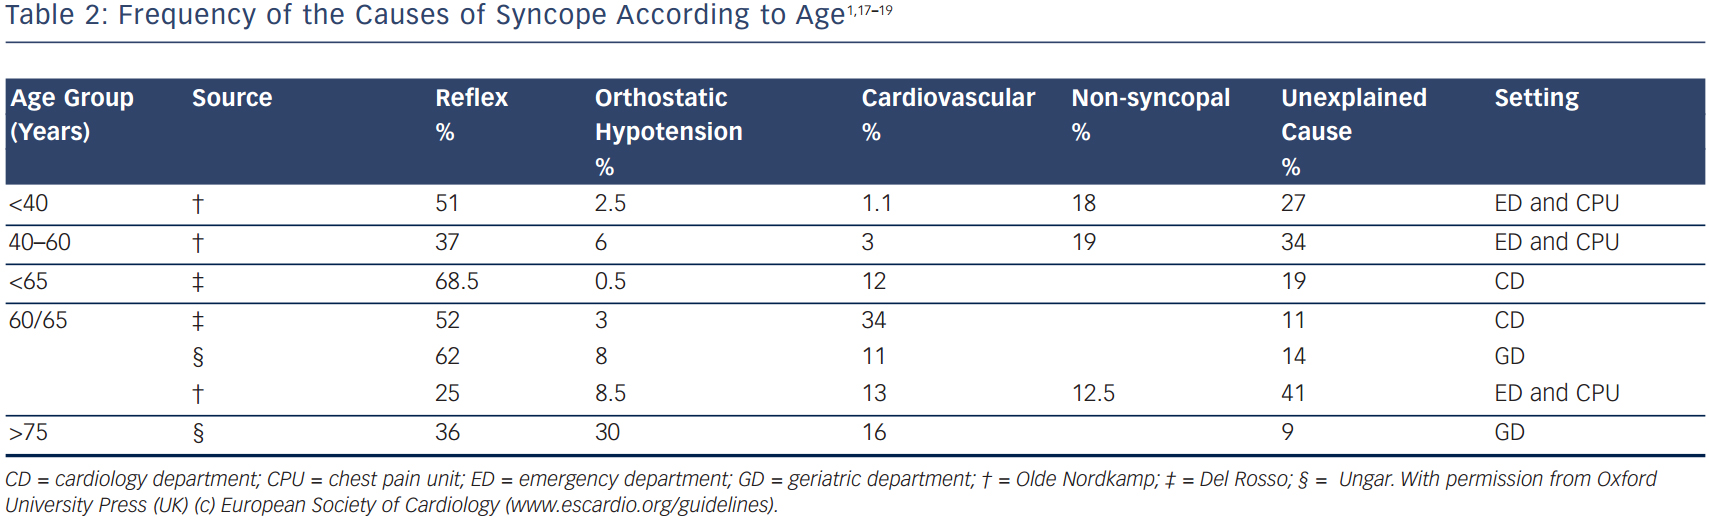 Frequency of the Causes of Syncope According to Age